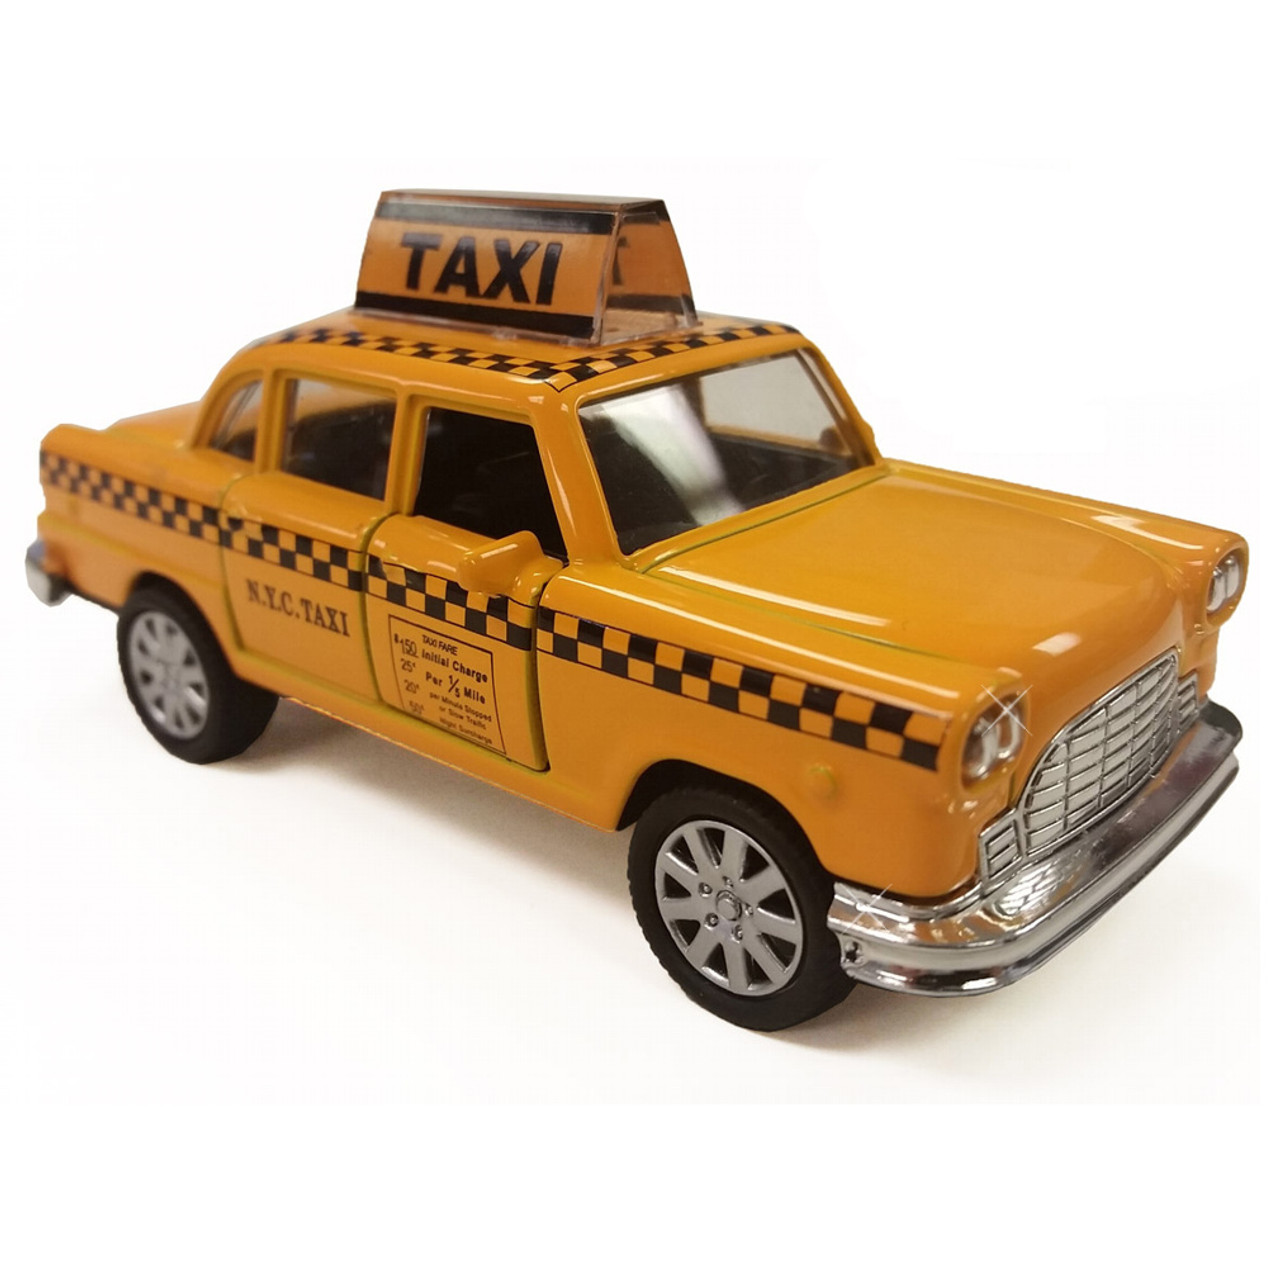 Toy Car Holder Truck : Diecast nyc taxi car souvenir toy place card holder